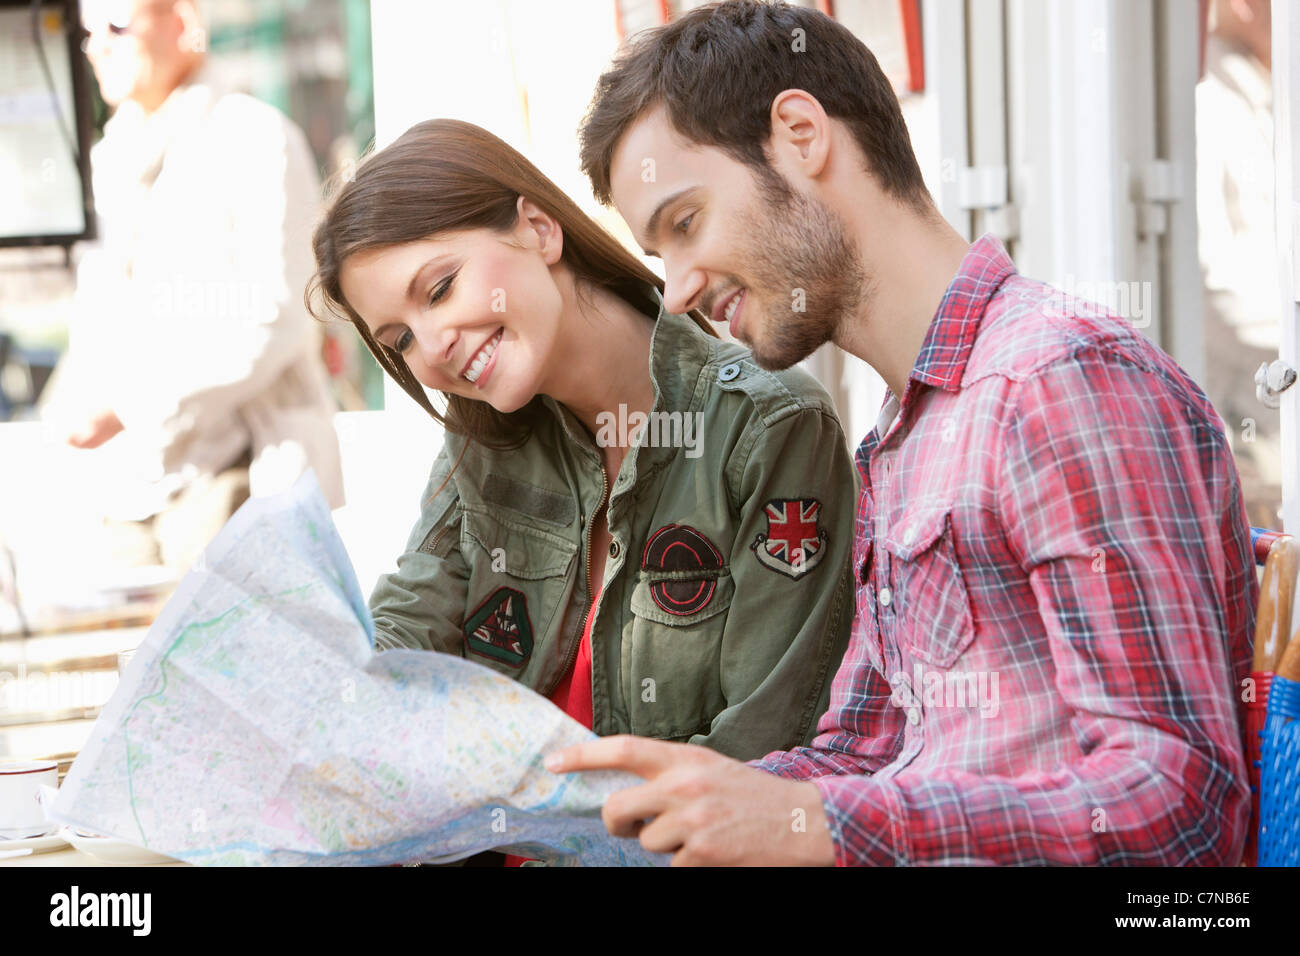 Couple sitting at a sidewalk cafe and reading a map, Paris, Ile-de-France, France - Stock Image